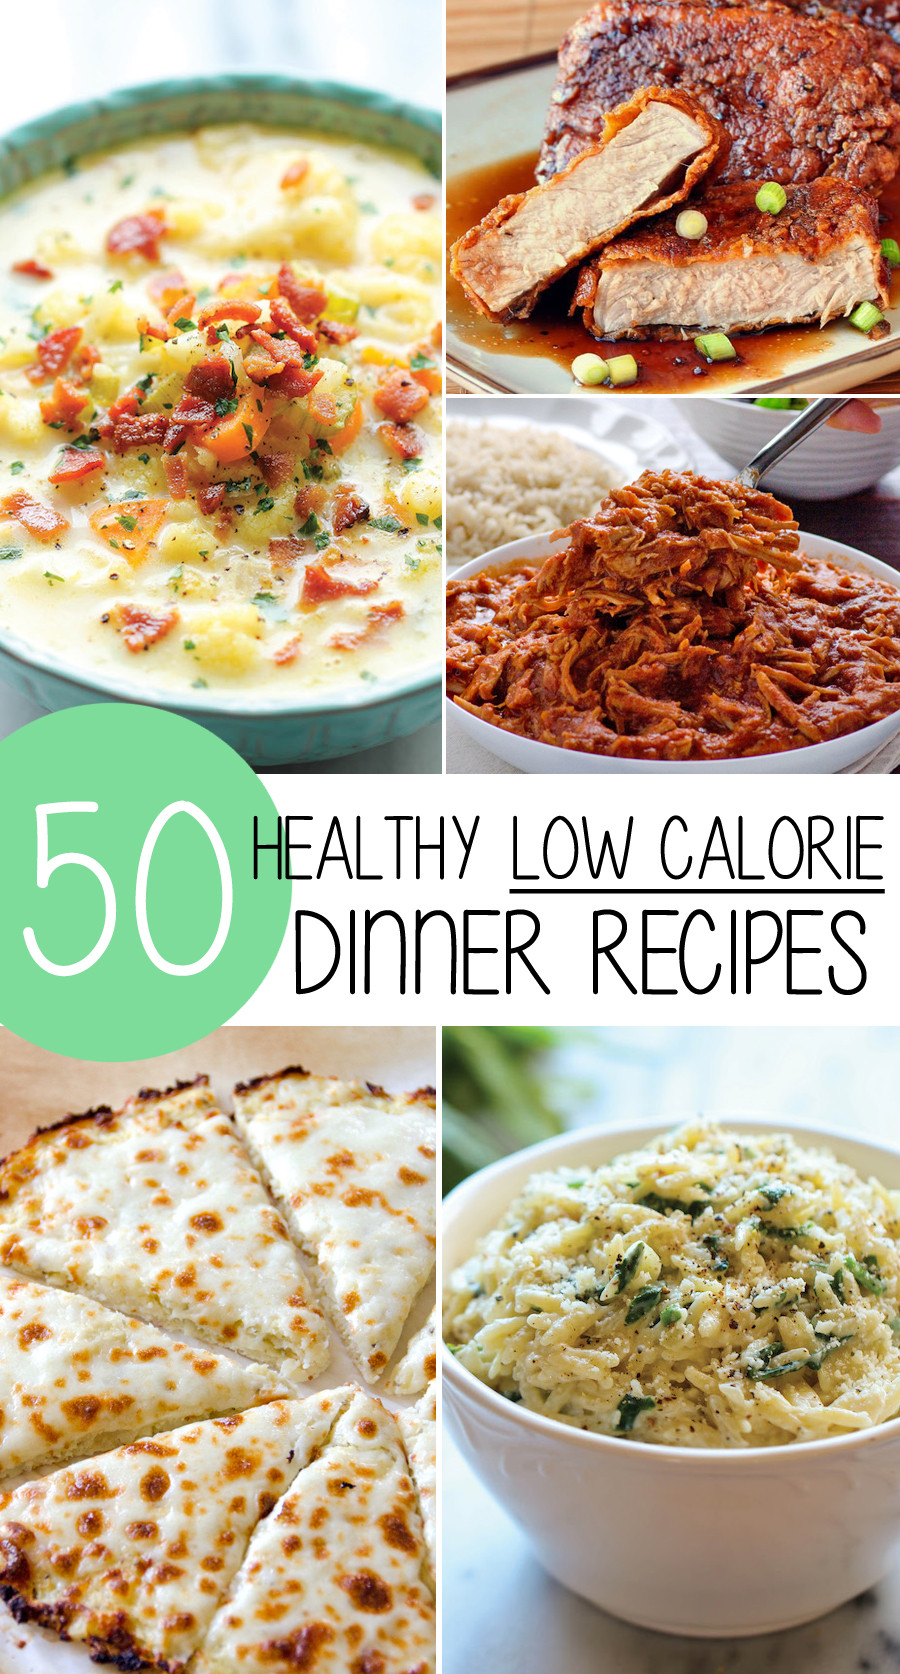 Low Calorie Recipes For Dinner  50 Healthy Low Calorie Weight Loss Dinner Recipes